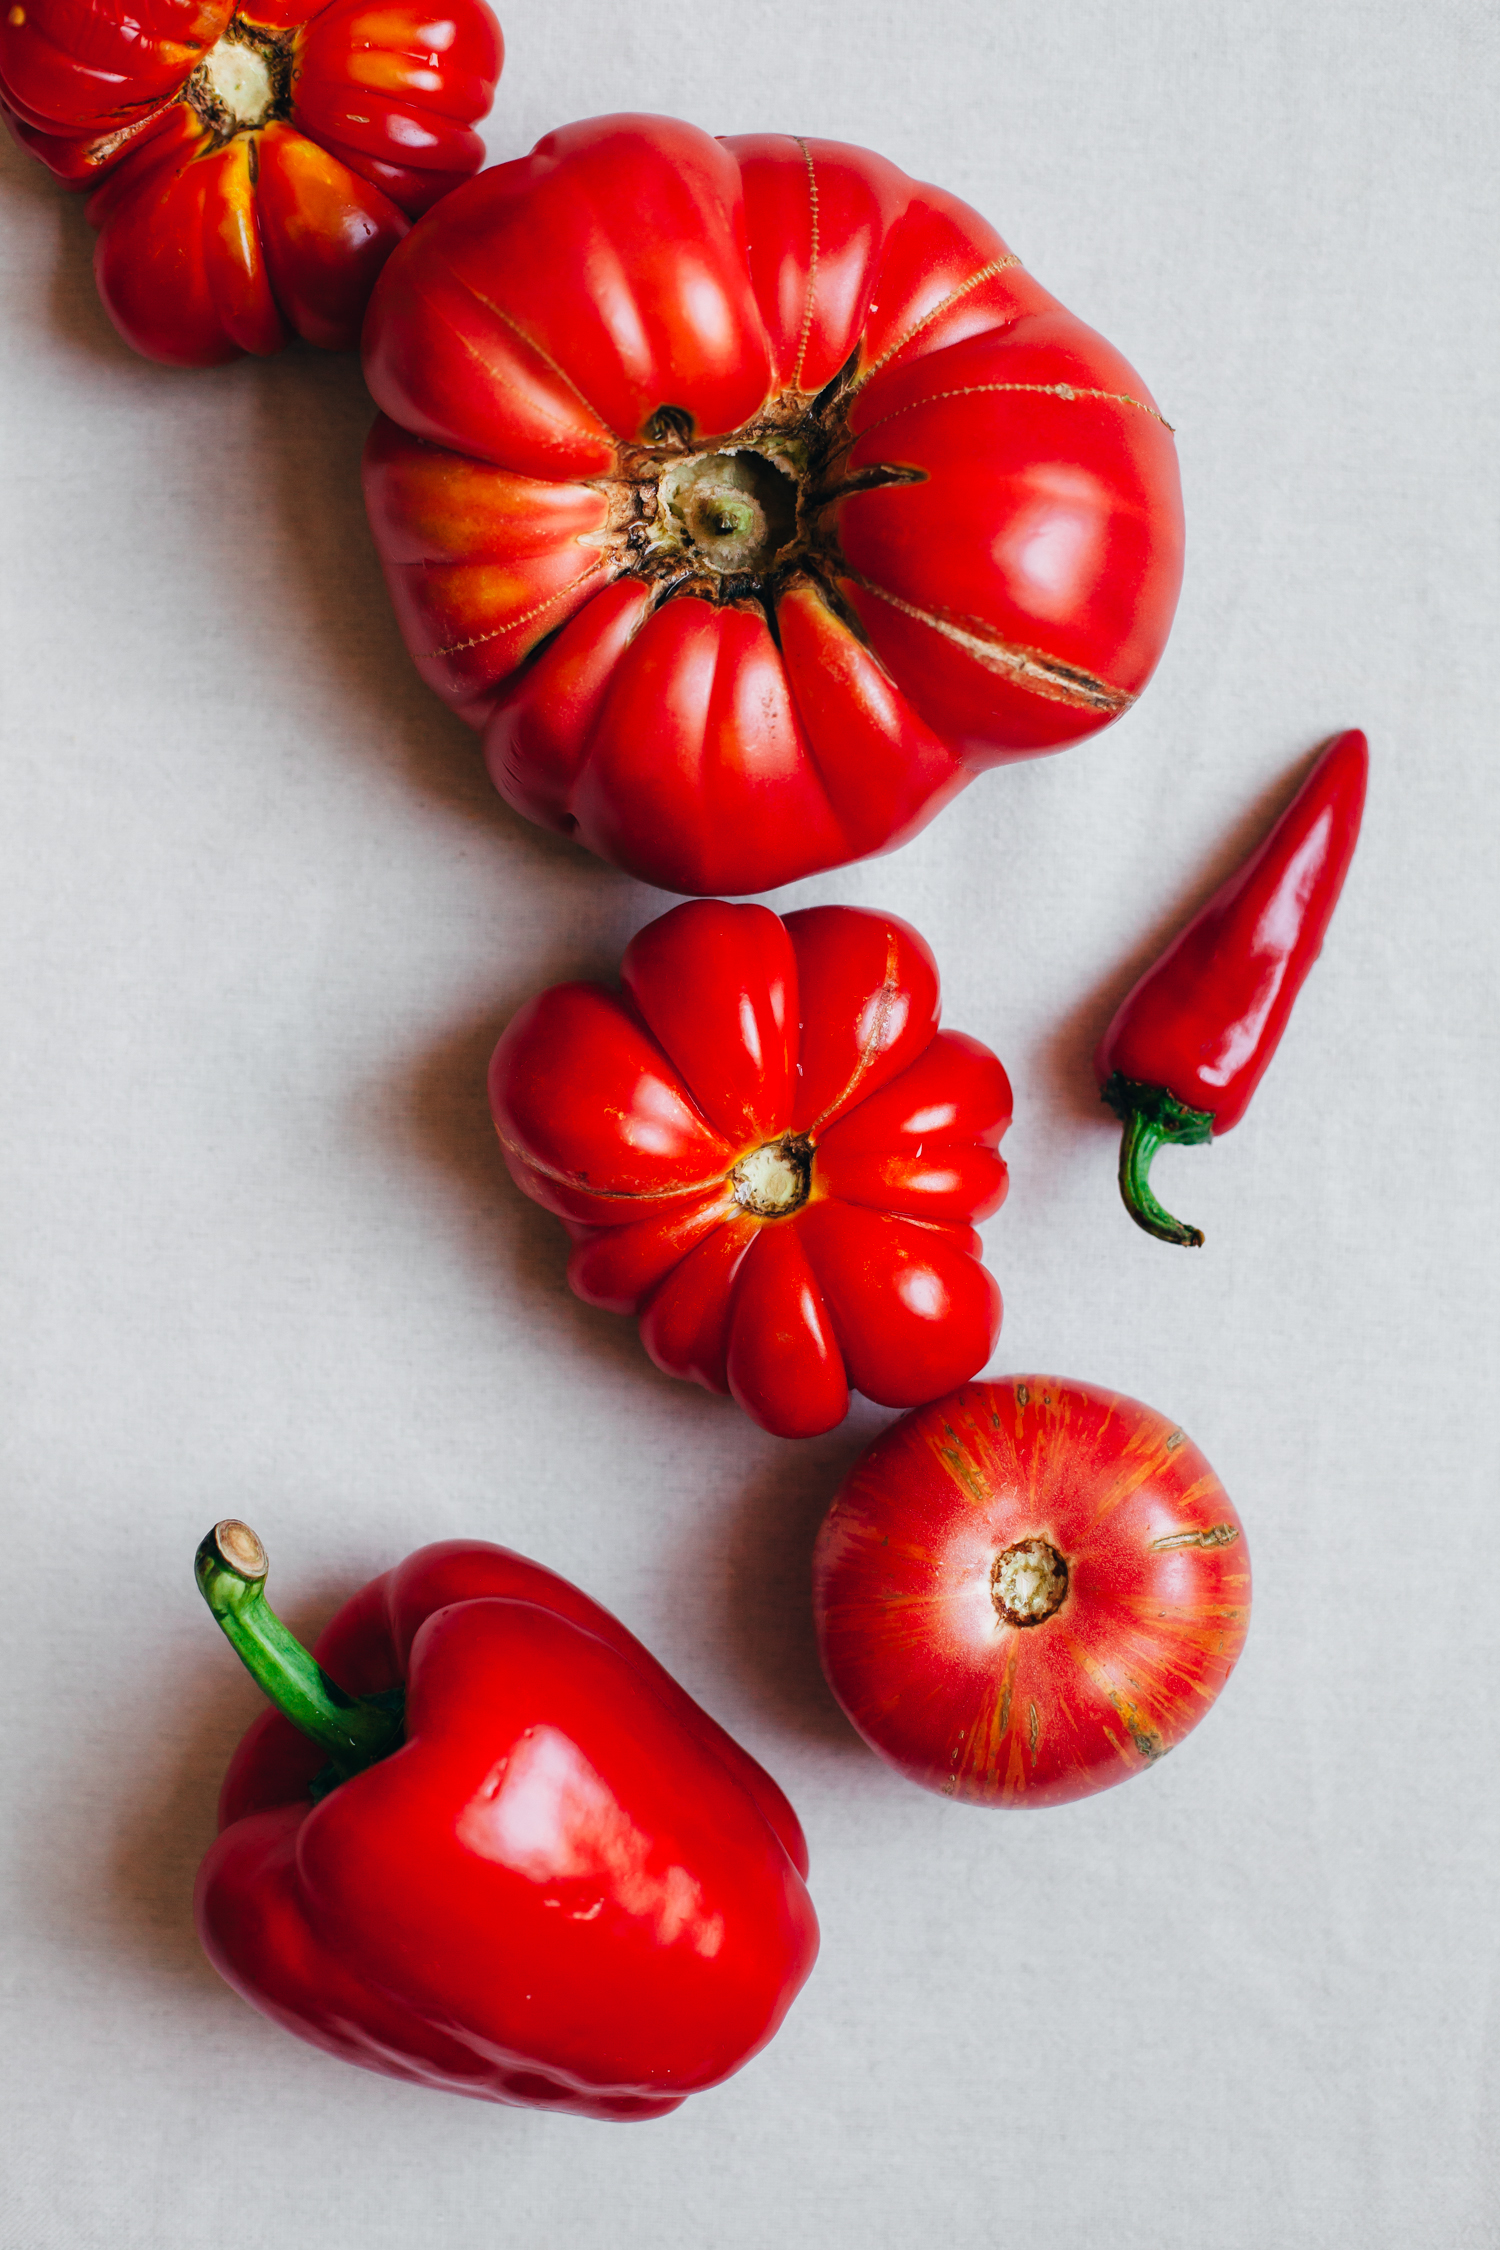 Favorite Tomato Recipes - Golubka Kitchen